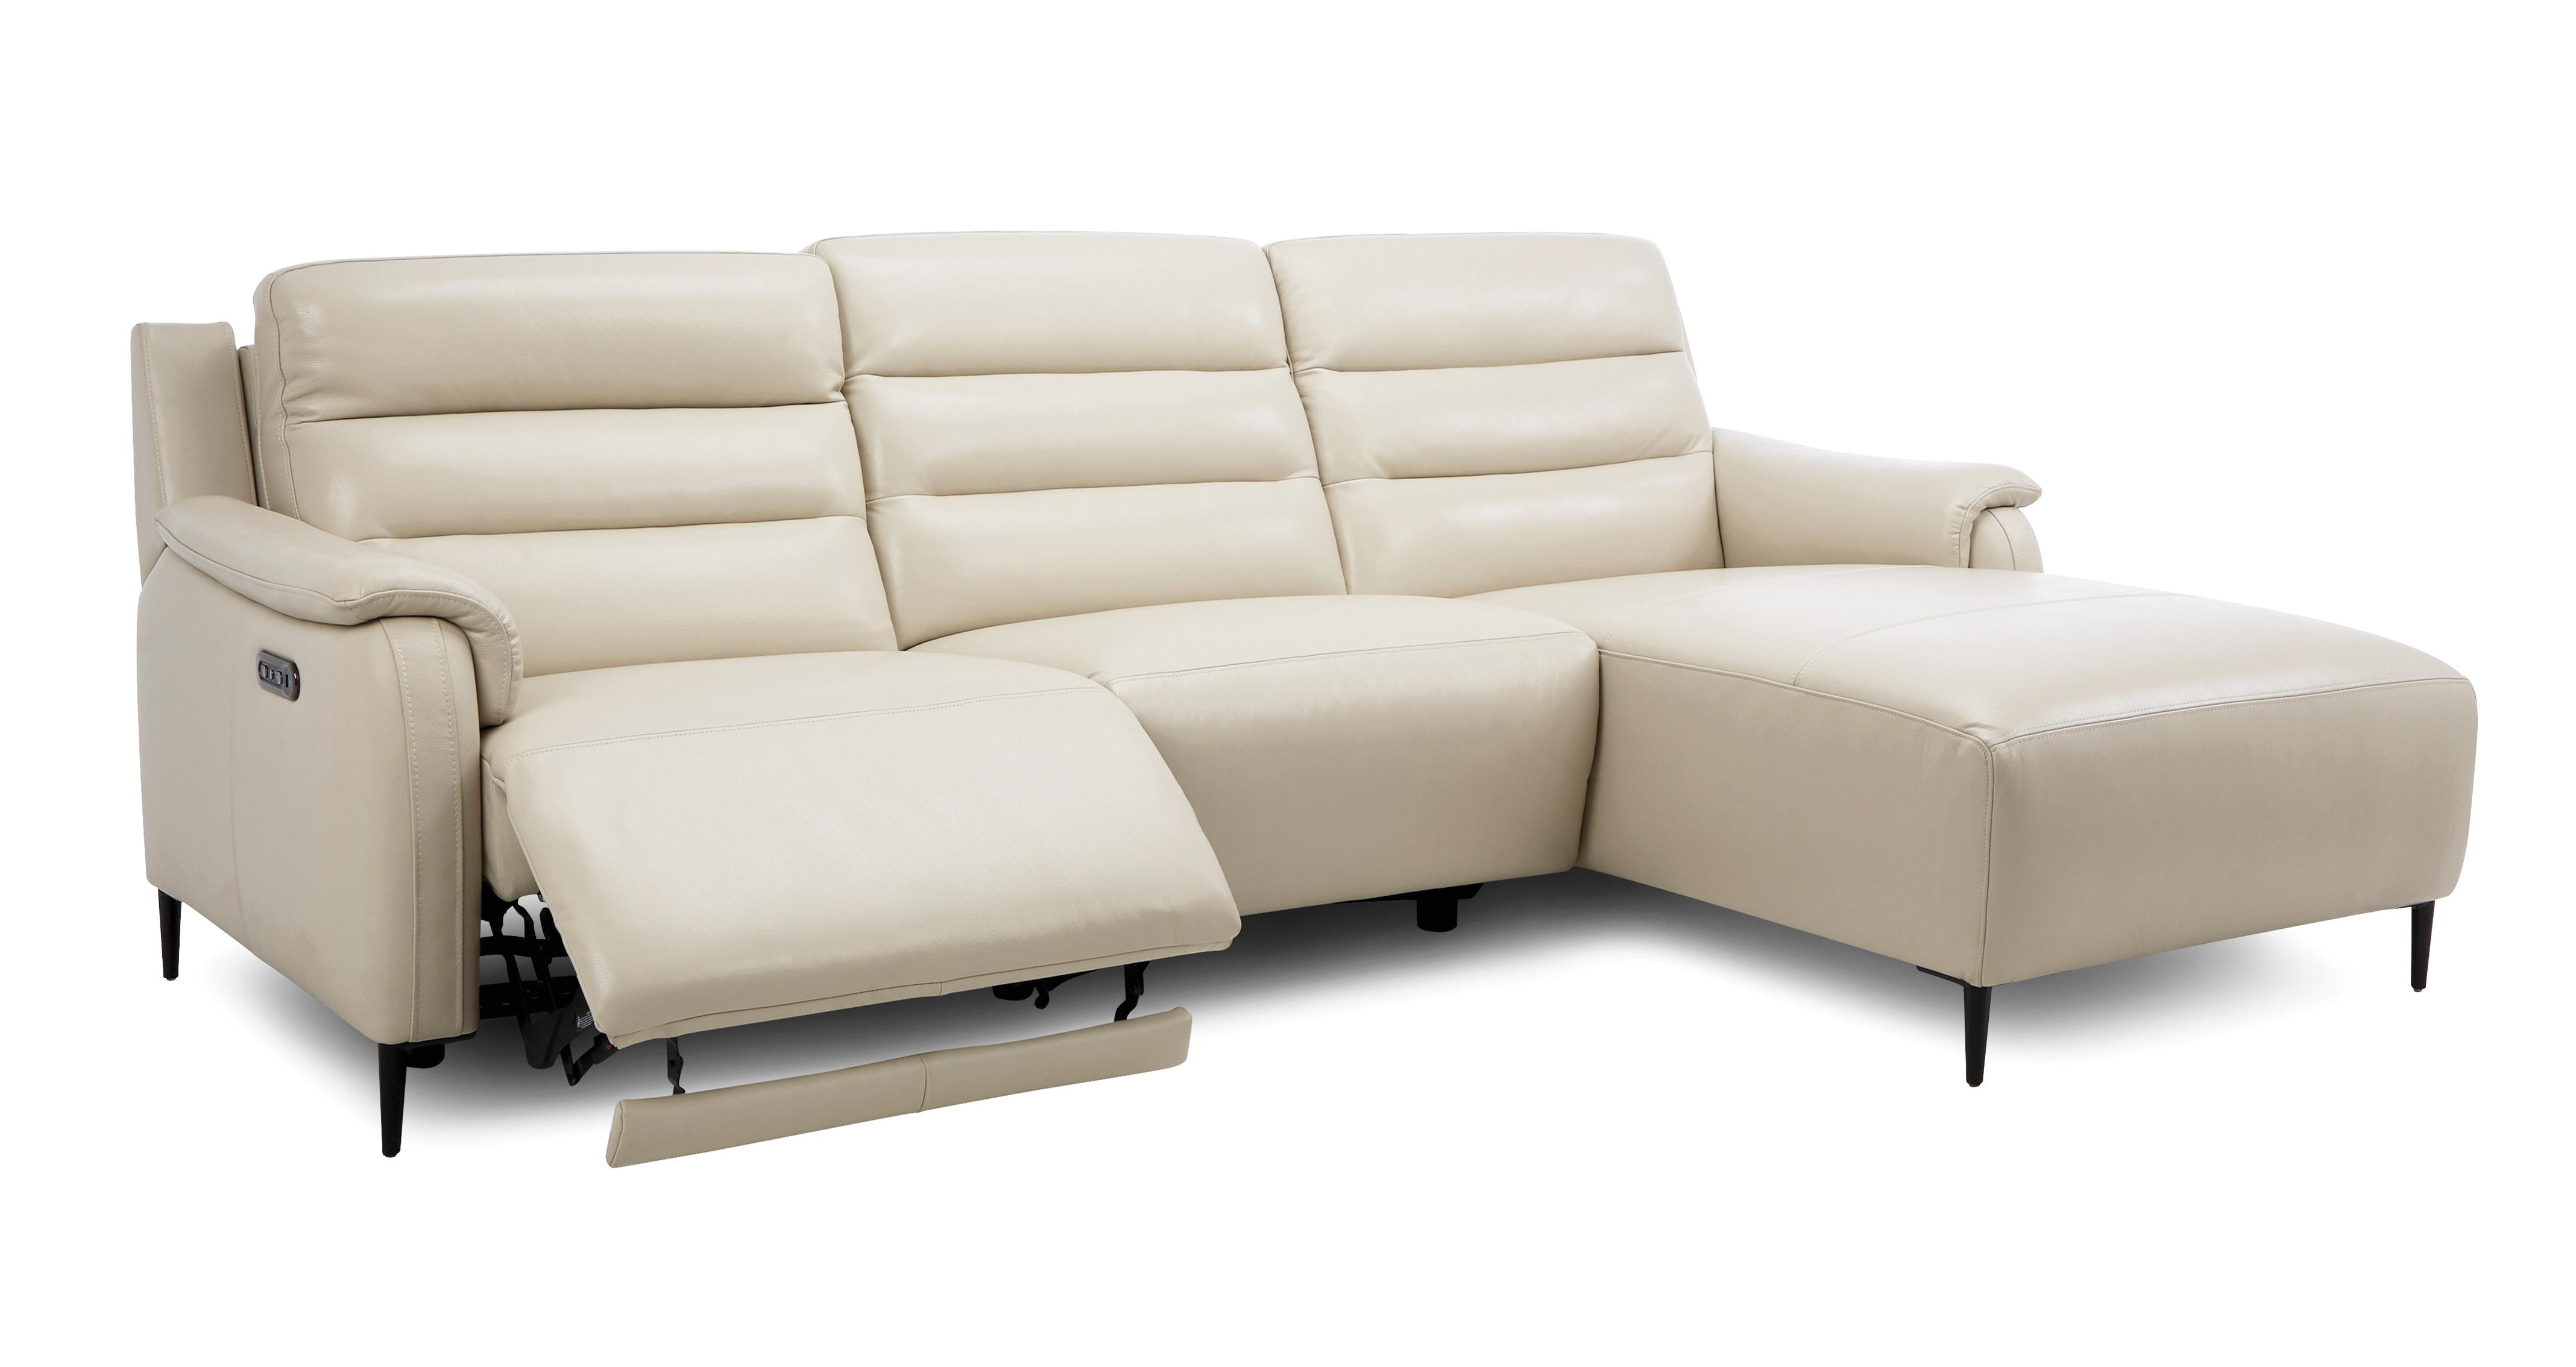 About the Alta: Right Hand Facing Power Chaise Sofa